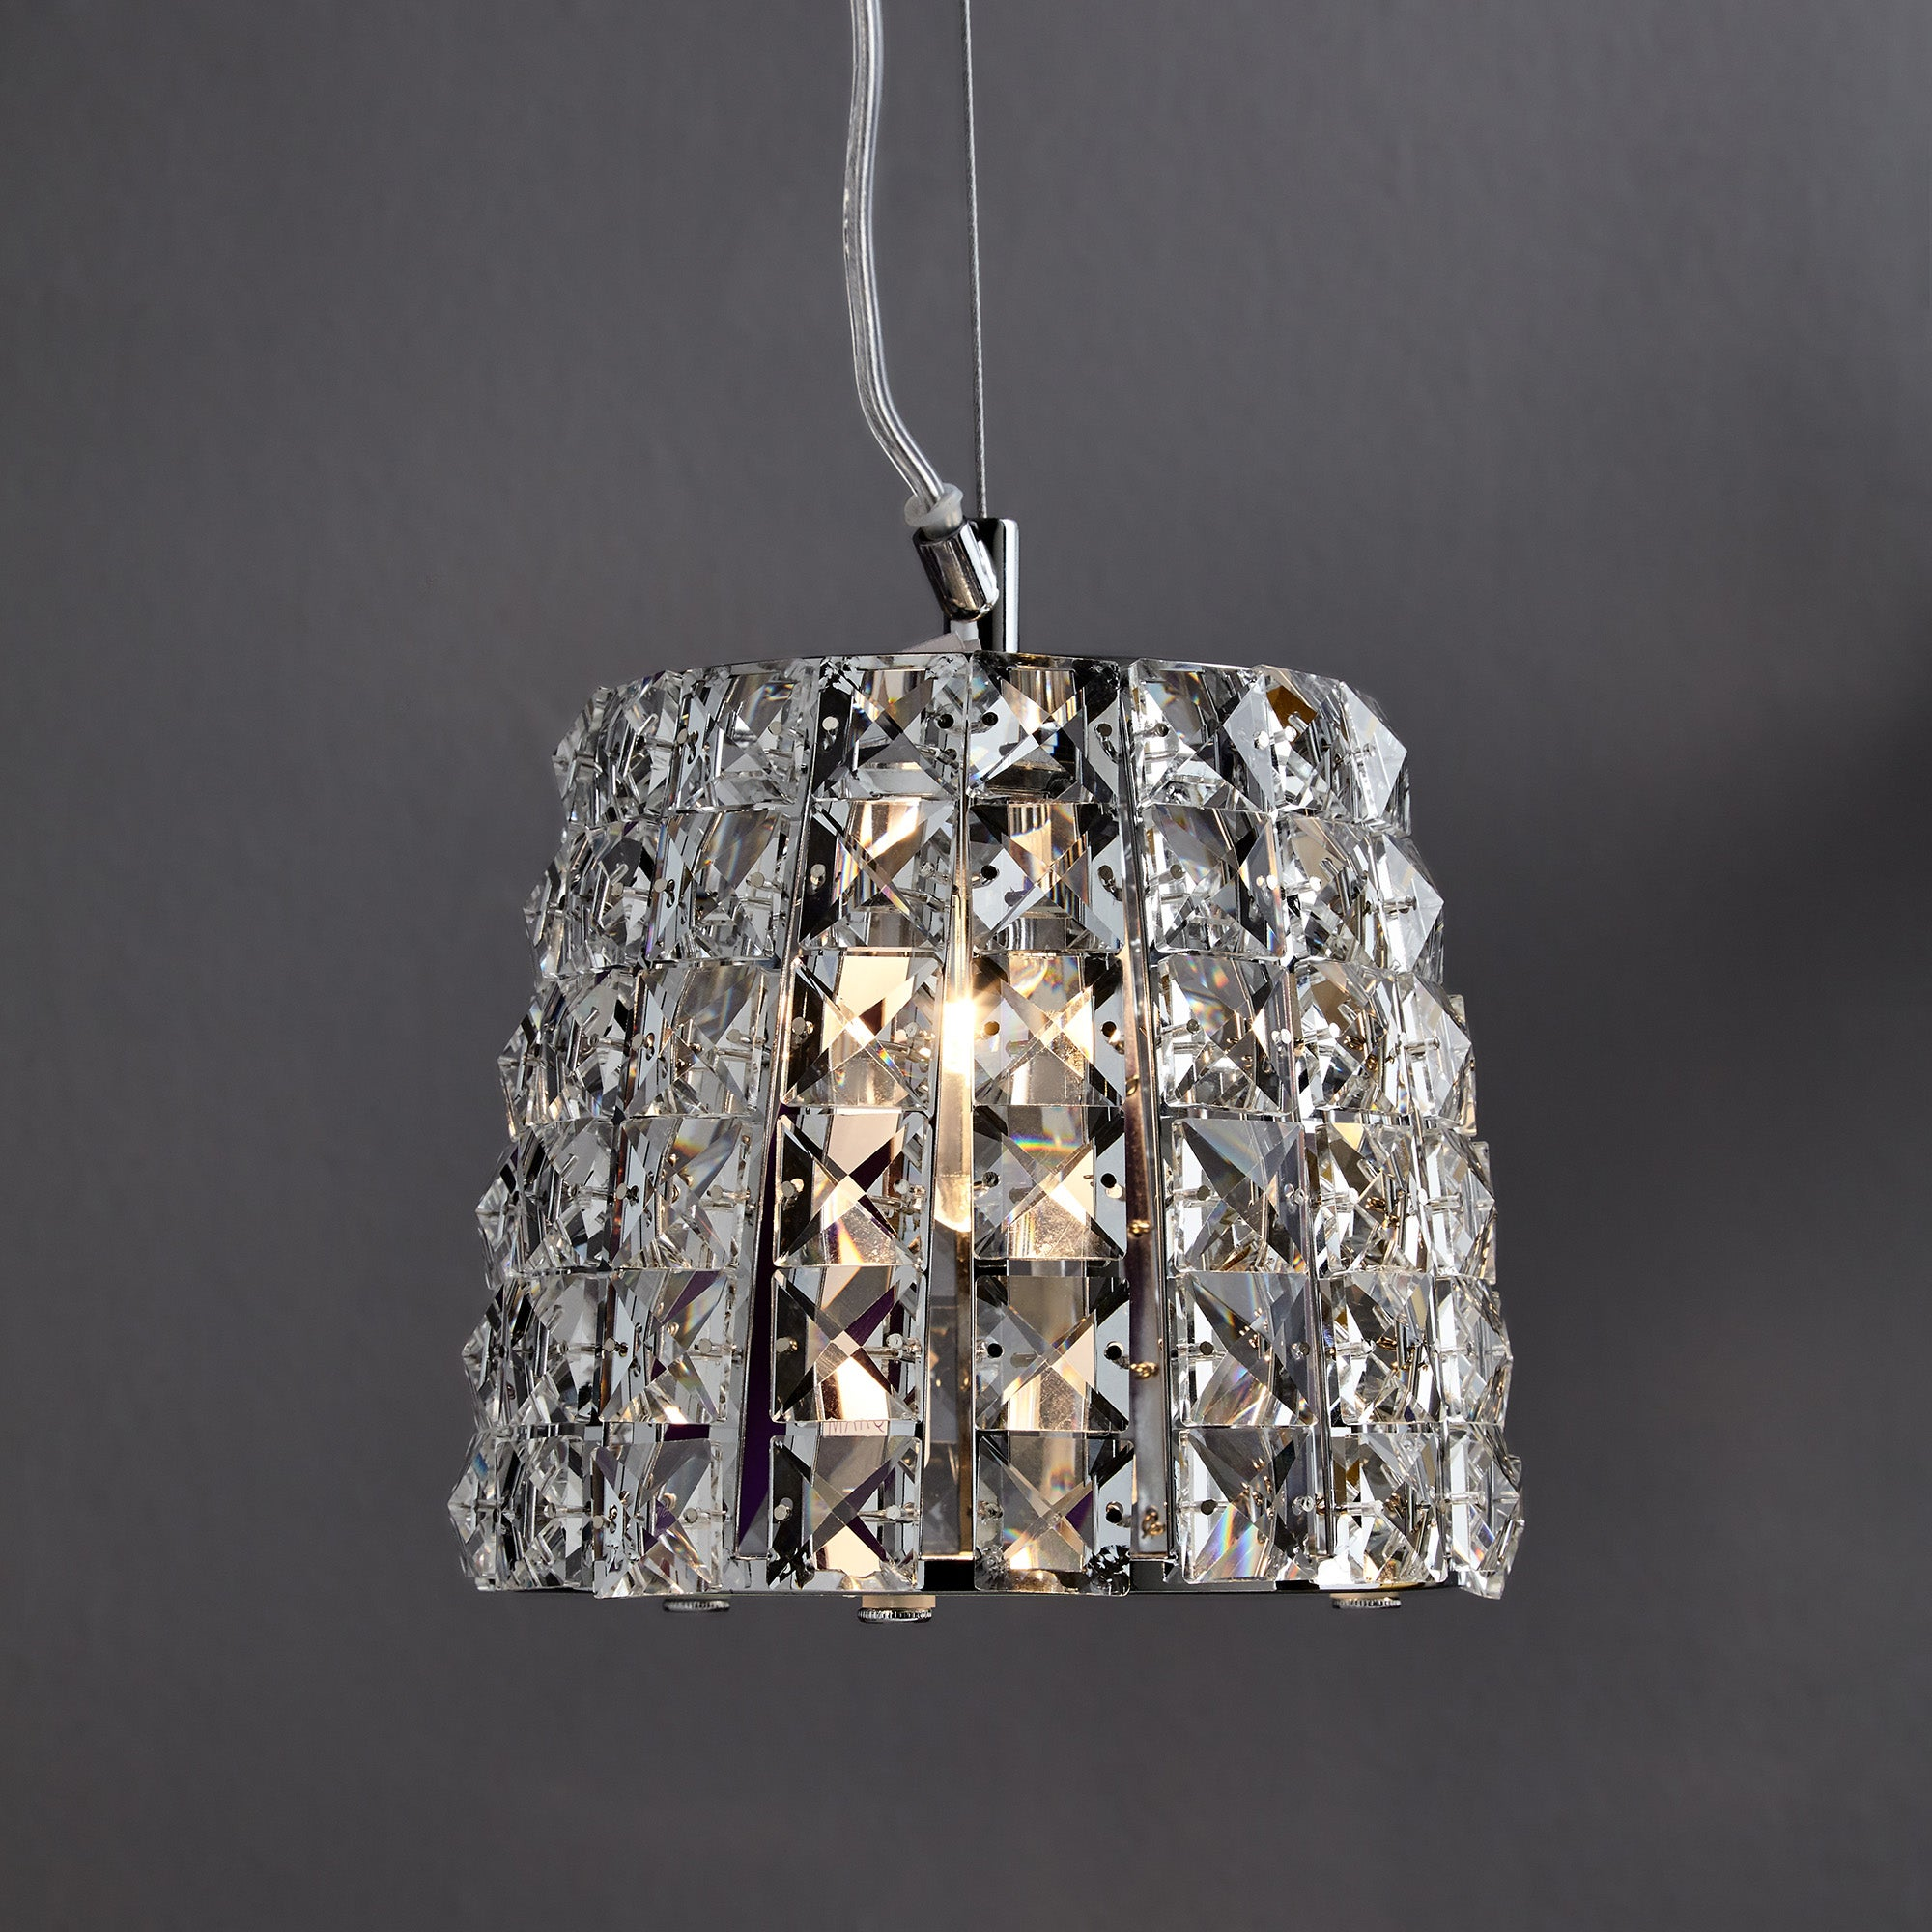 Image of Marquis by Waterford Moy Chrome Light Pendant Chrome